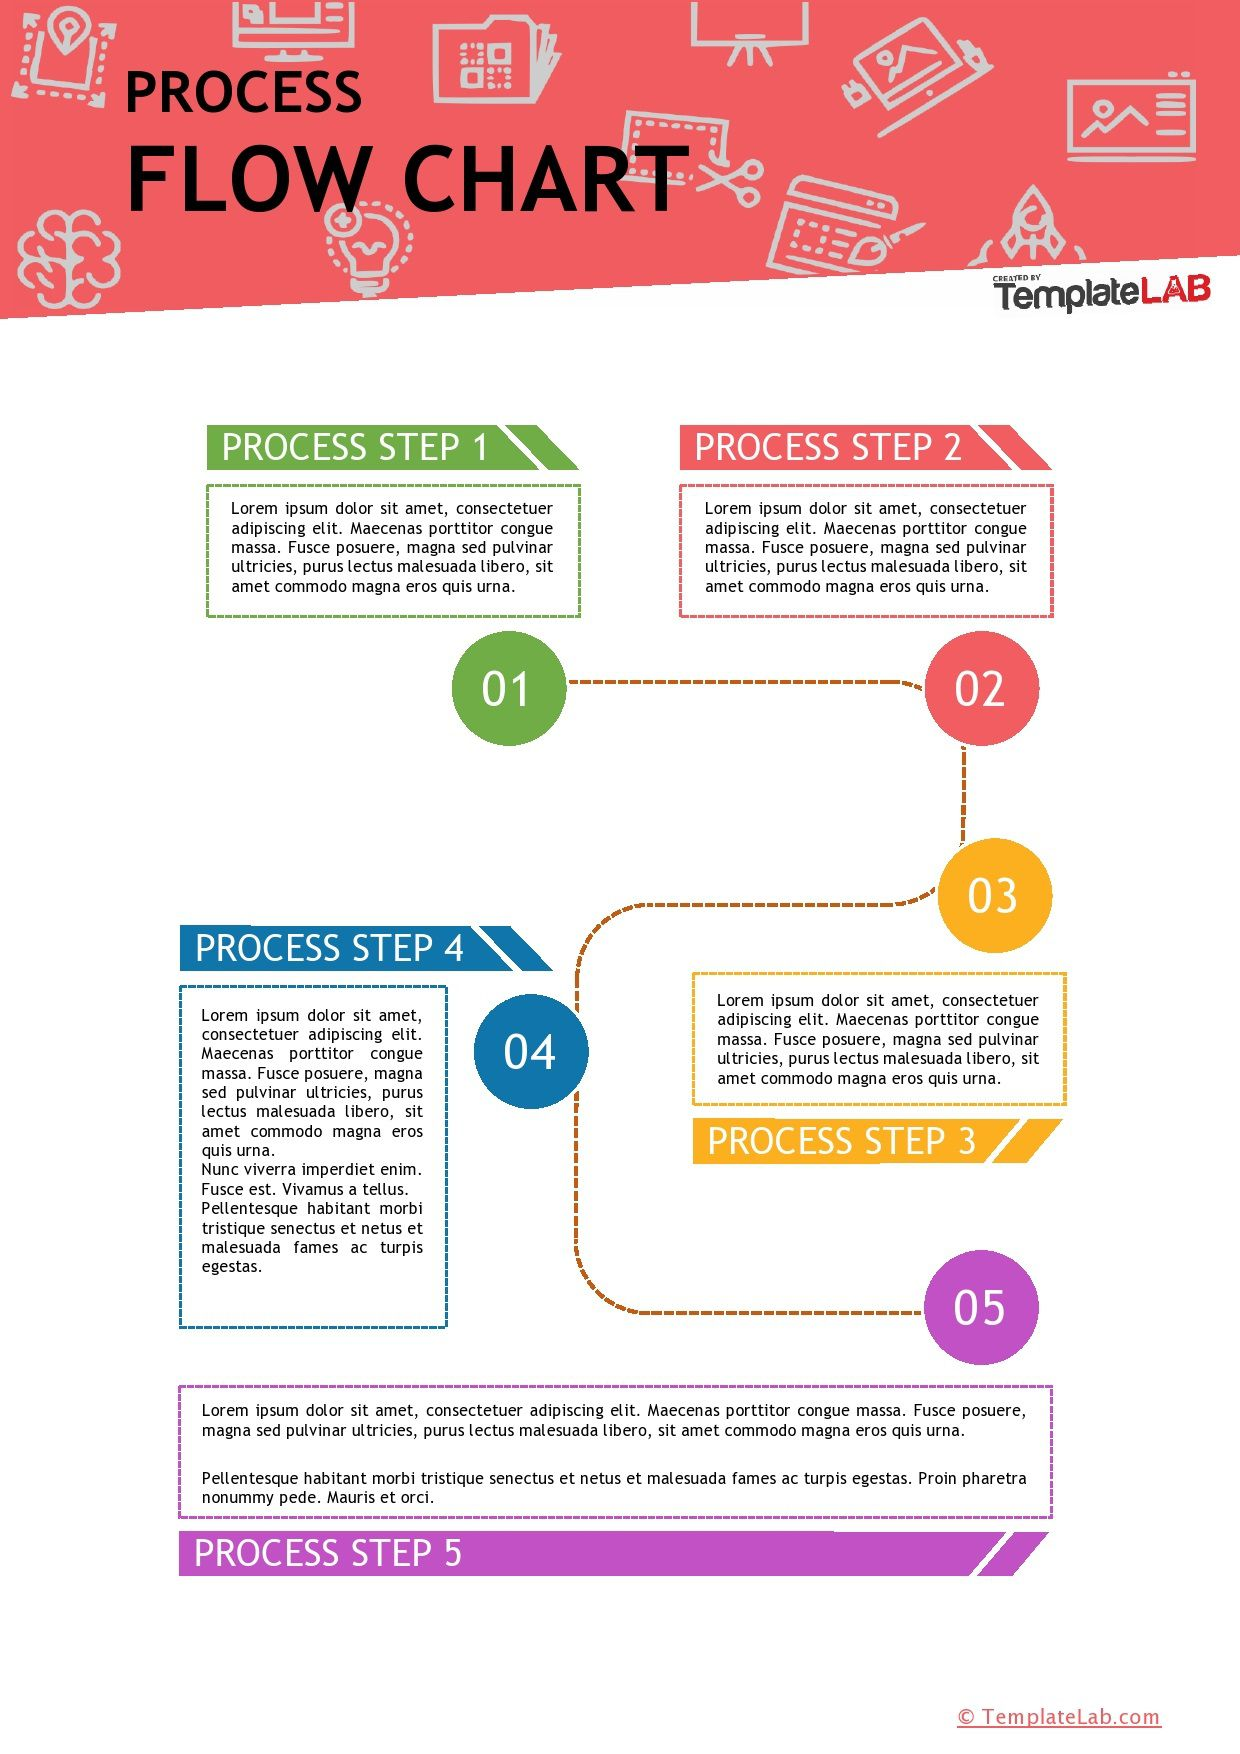 009 Wondrou Flow Chart Template Excel Free Photo  Blank For DownloadFull